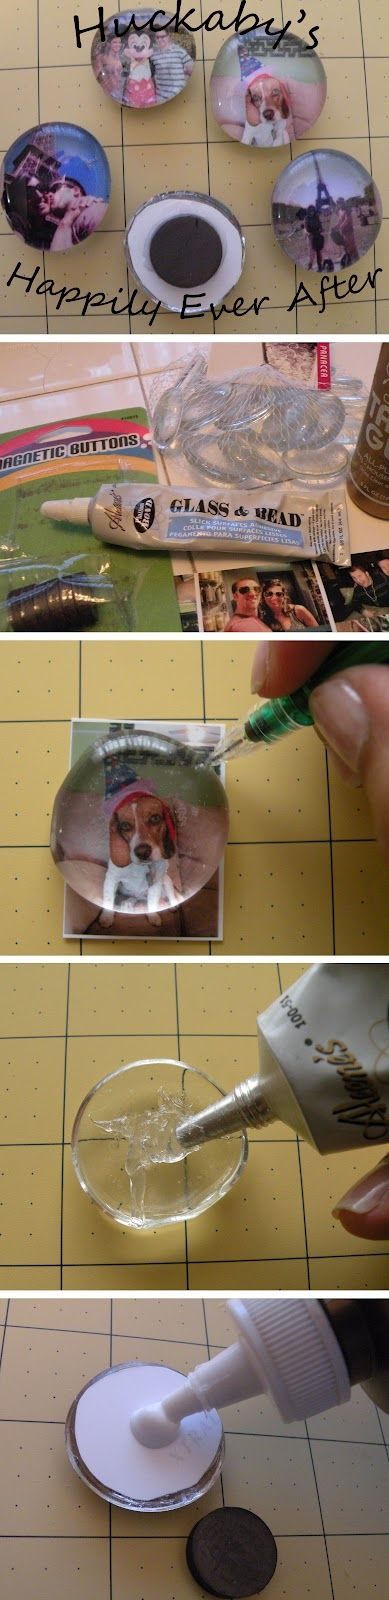 The Huckaby's Happily Ever After: Photo Magnets with Glass Gems